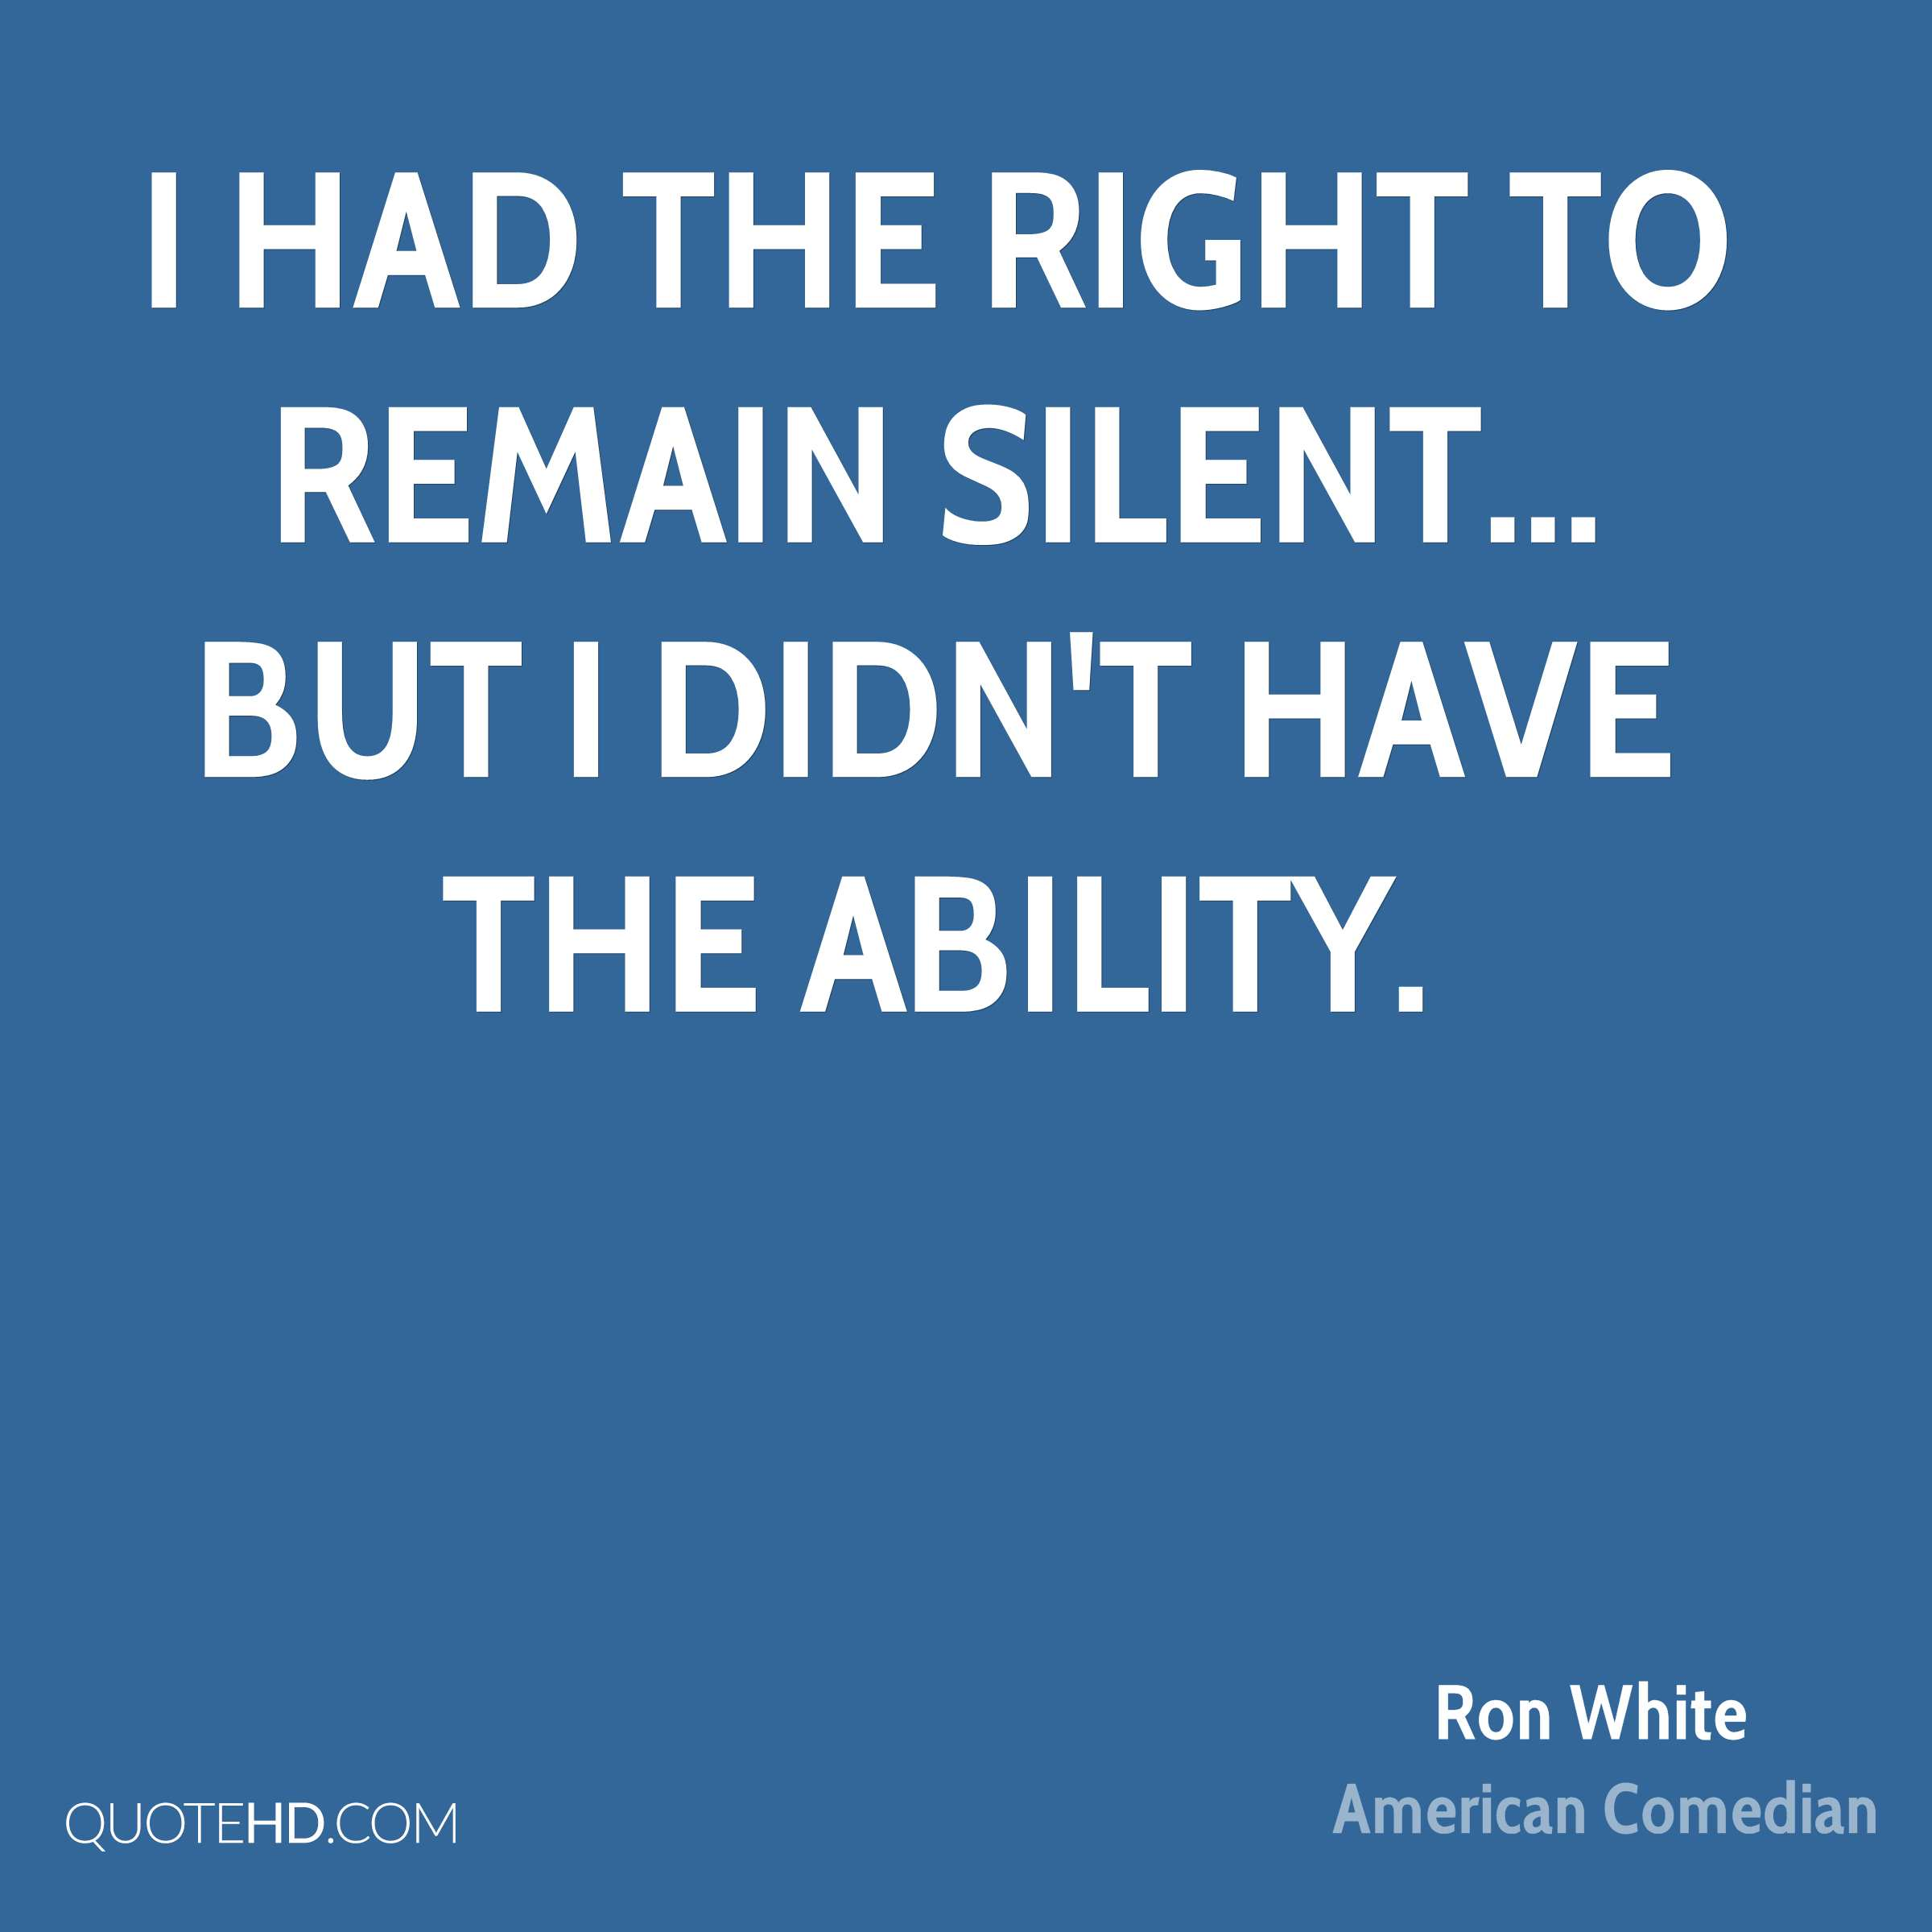 I had the right to remain silent... but I didn't have the ability.